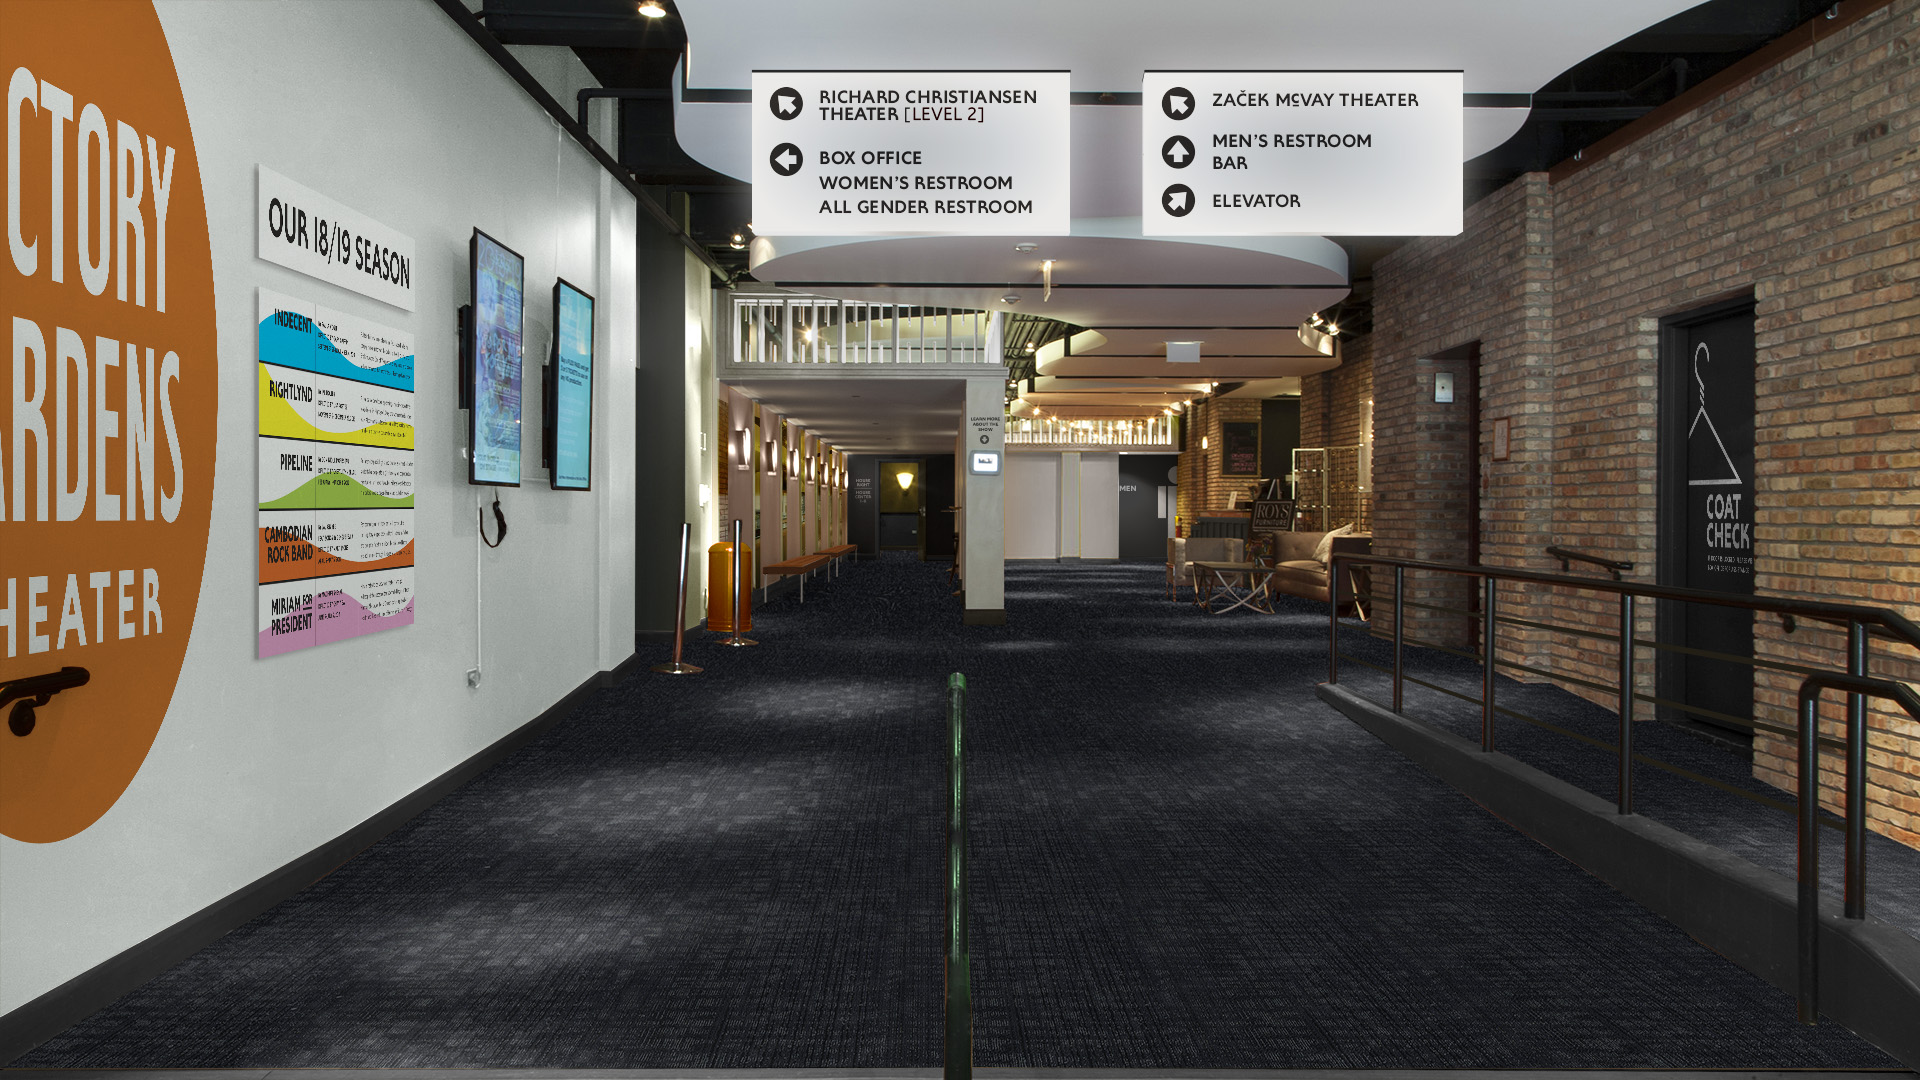 My proposal for an updated lobby of the Biograph Theater — cleaning up its current hodgepodge of paint colors and providing bold, clean wayfinding graphics in line with the theater's other visual branding.